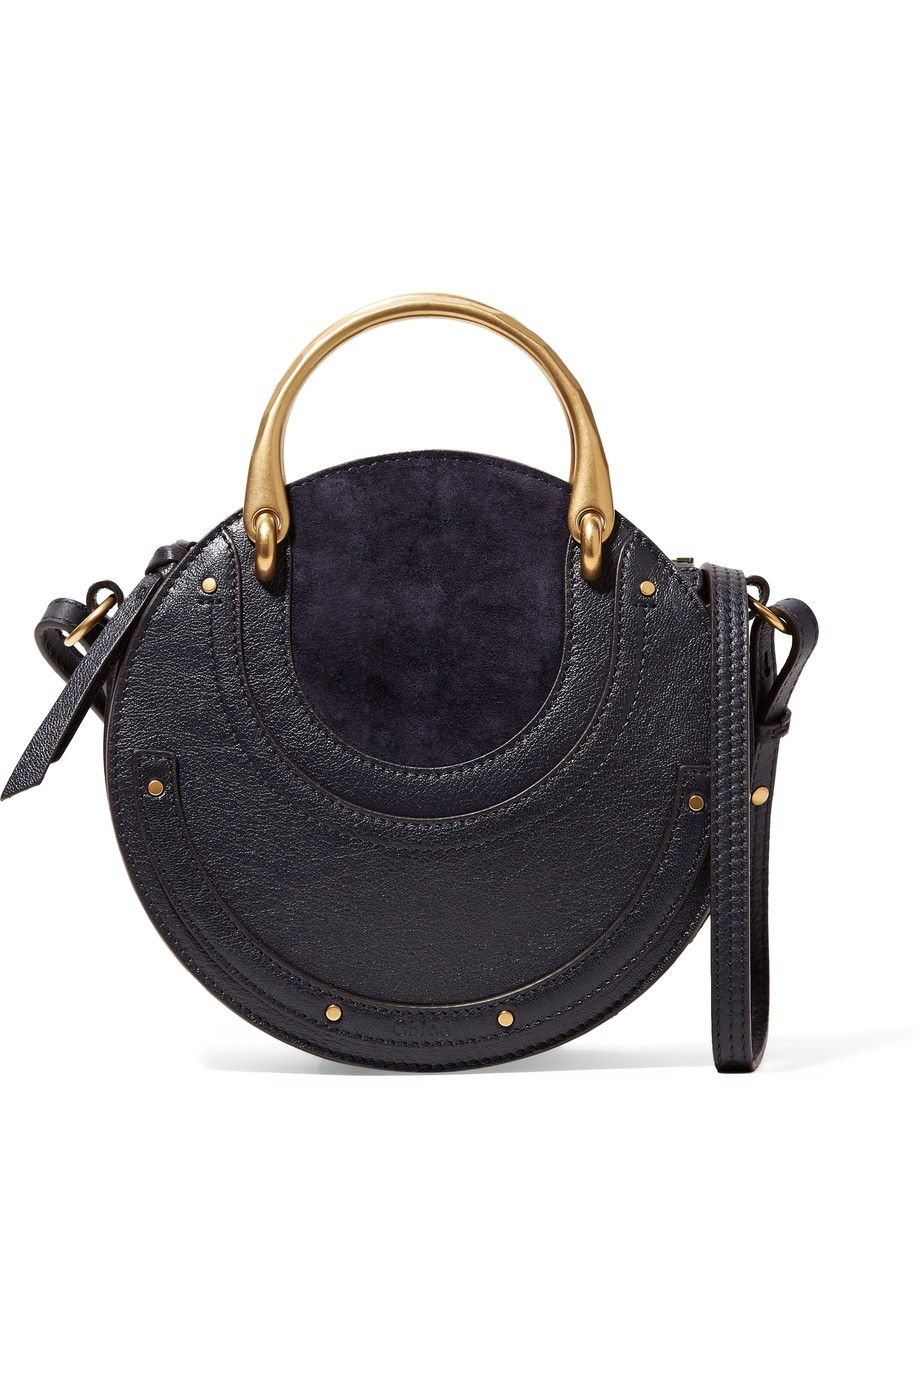 The Designer Handbags Worth Investing In For 2018 Chloe Pixie Top Handle Suede And Leather Bag From Instyle